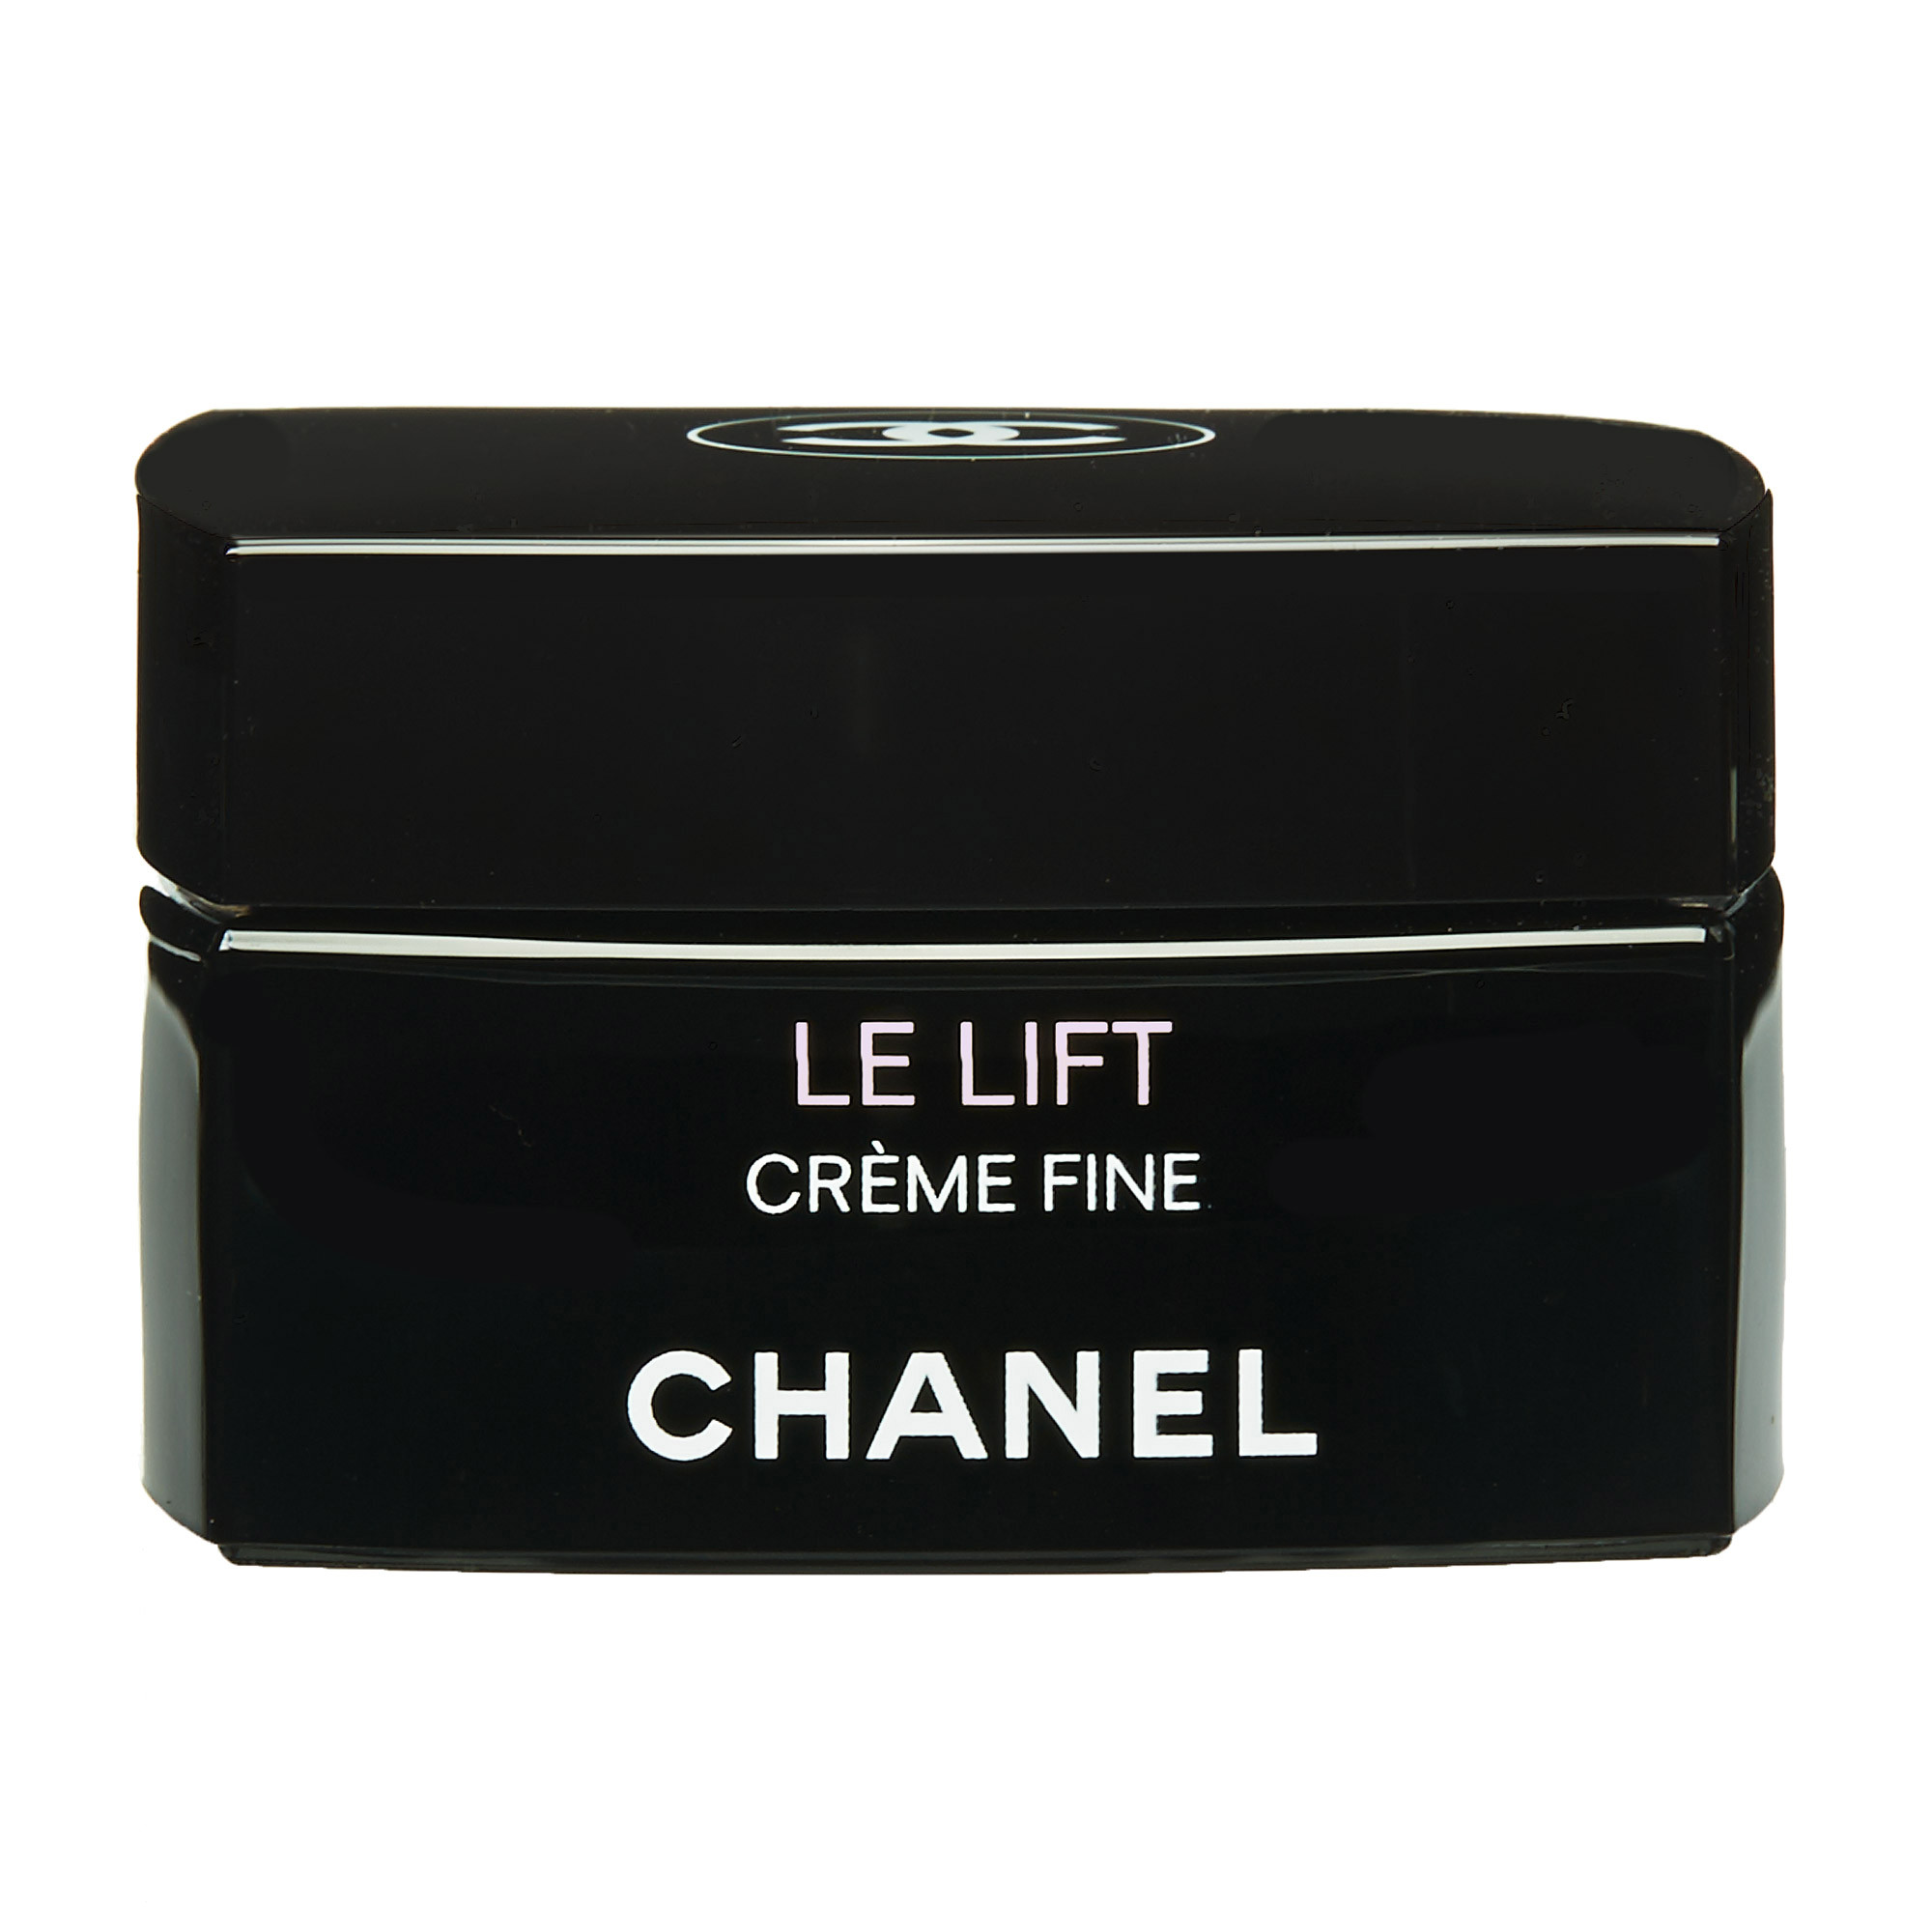 Chanel Le Lift Creme Fine 1.7 oz.